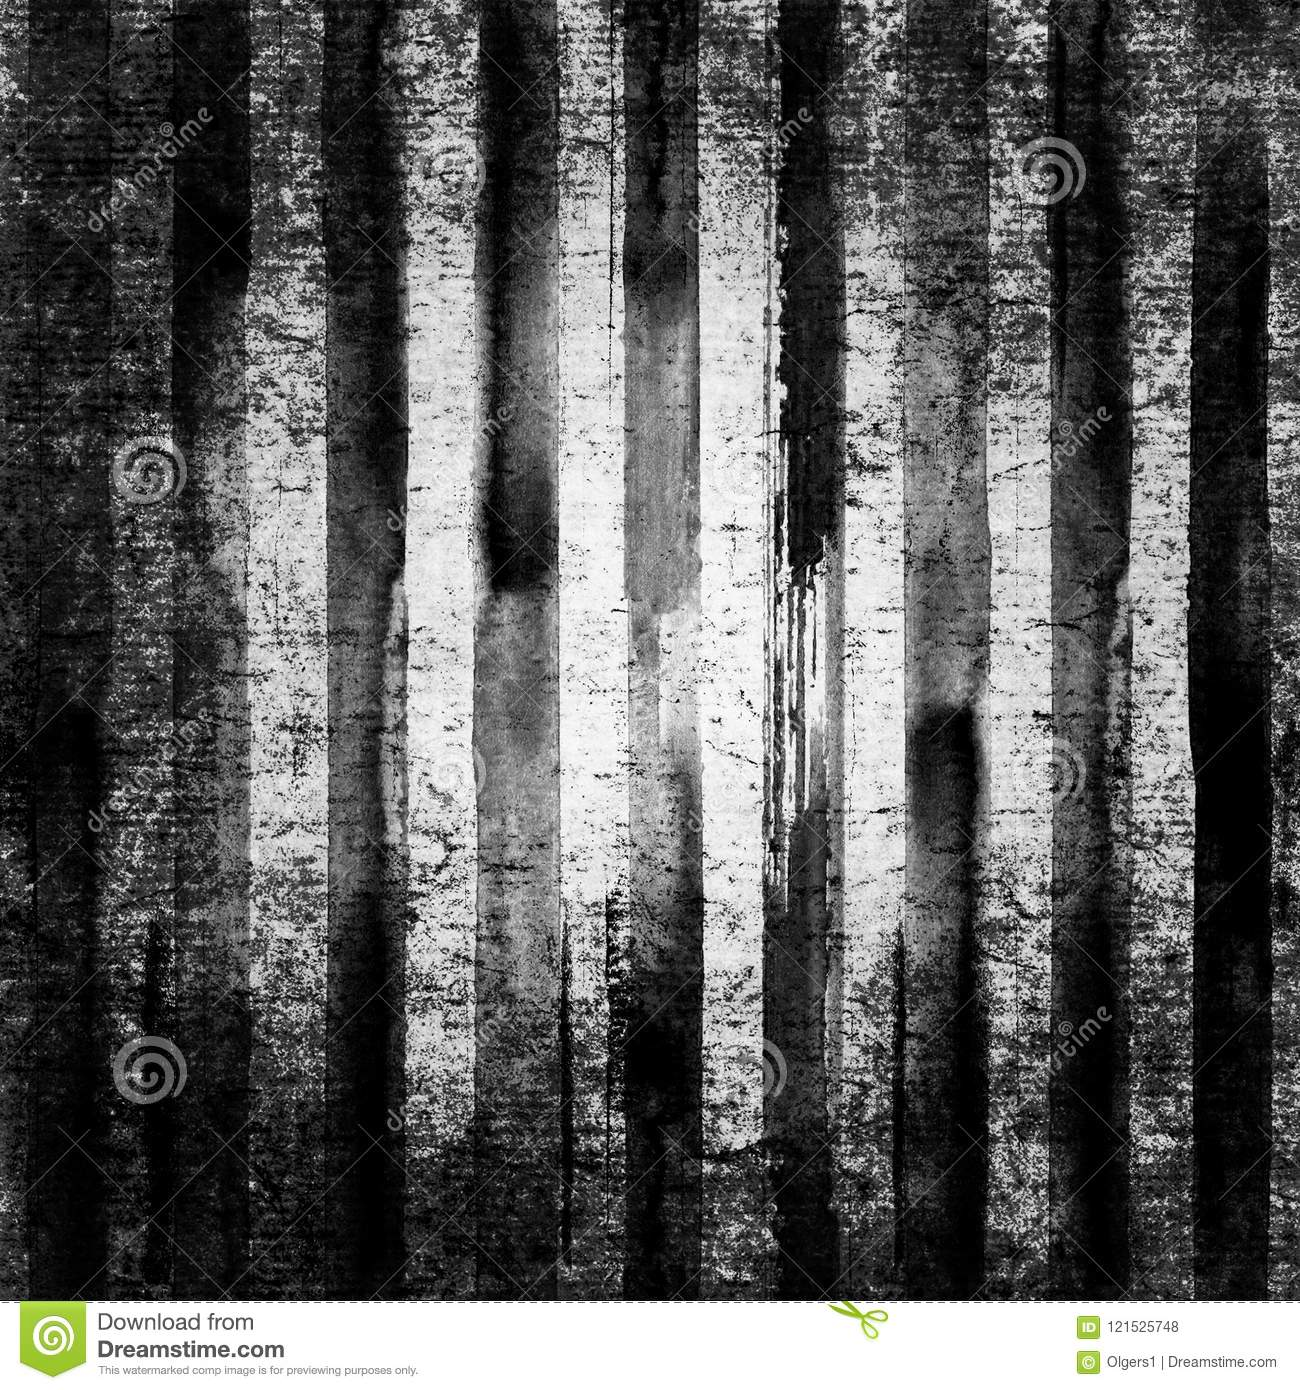 20f8a92ef03 Black and white stripes grunge vintage background. Watercolor hand drawn  striped backdrop. Watercolour abstract texture. Art rough urban splattered  dirty ...